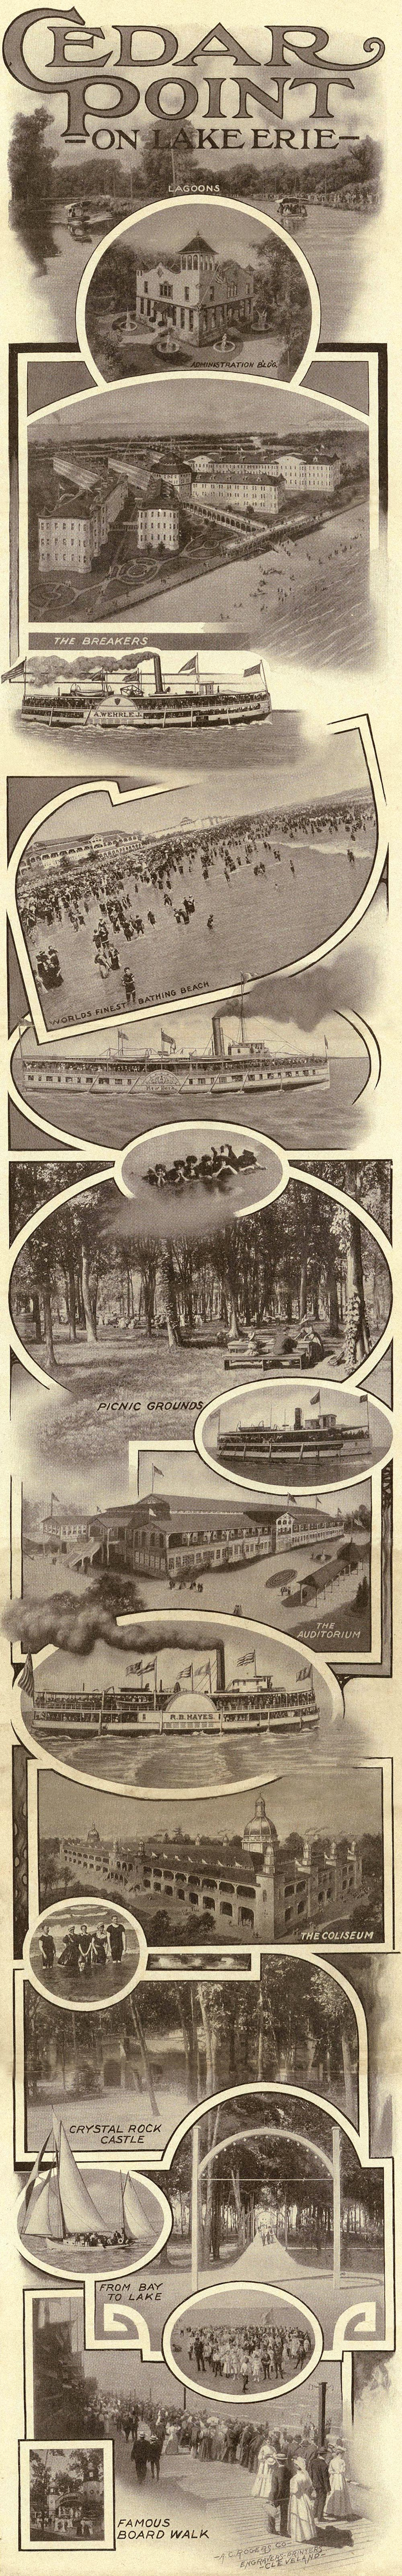 Cedar Point promotional booklet, 1909.